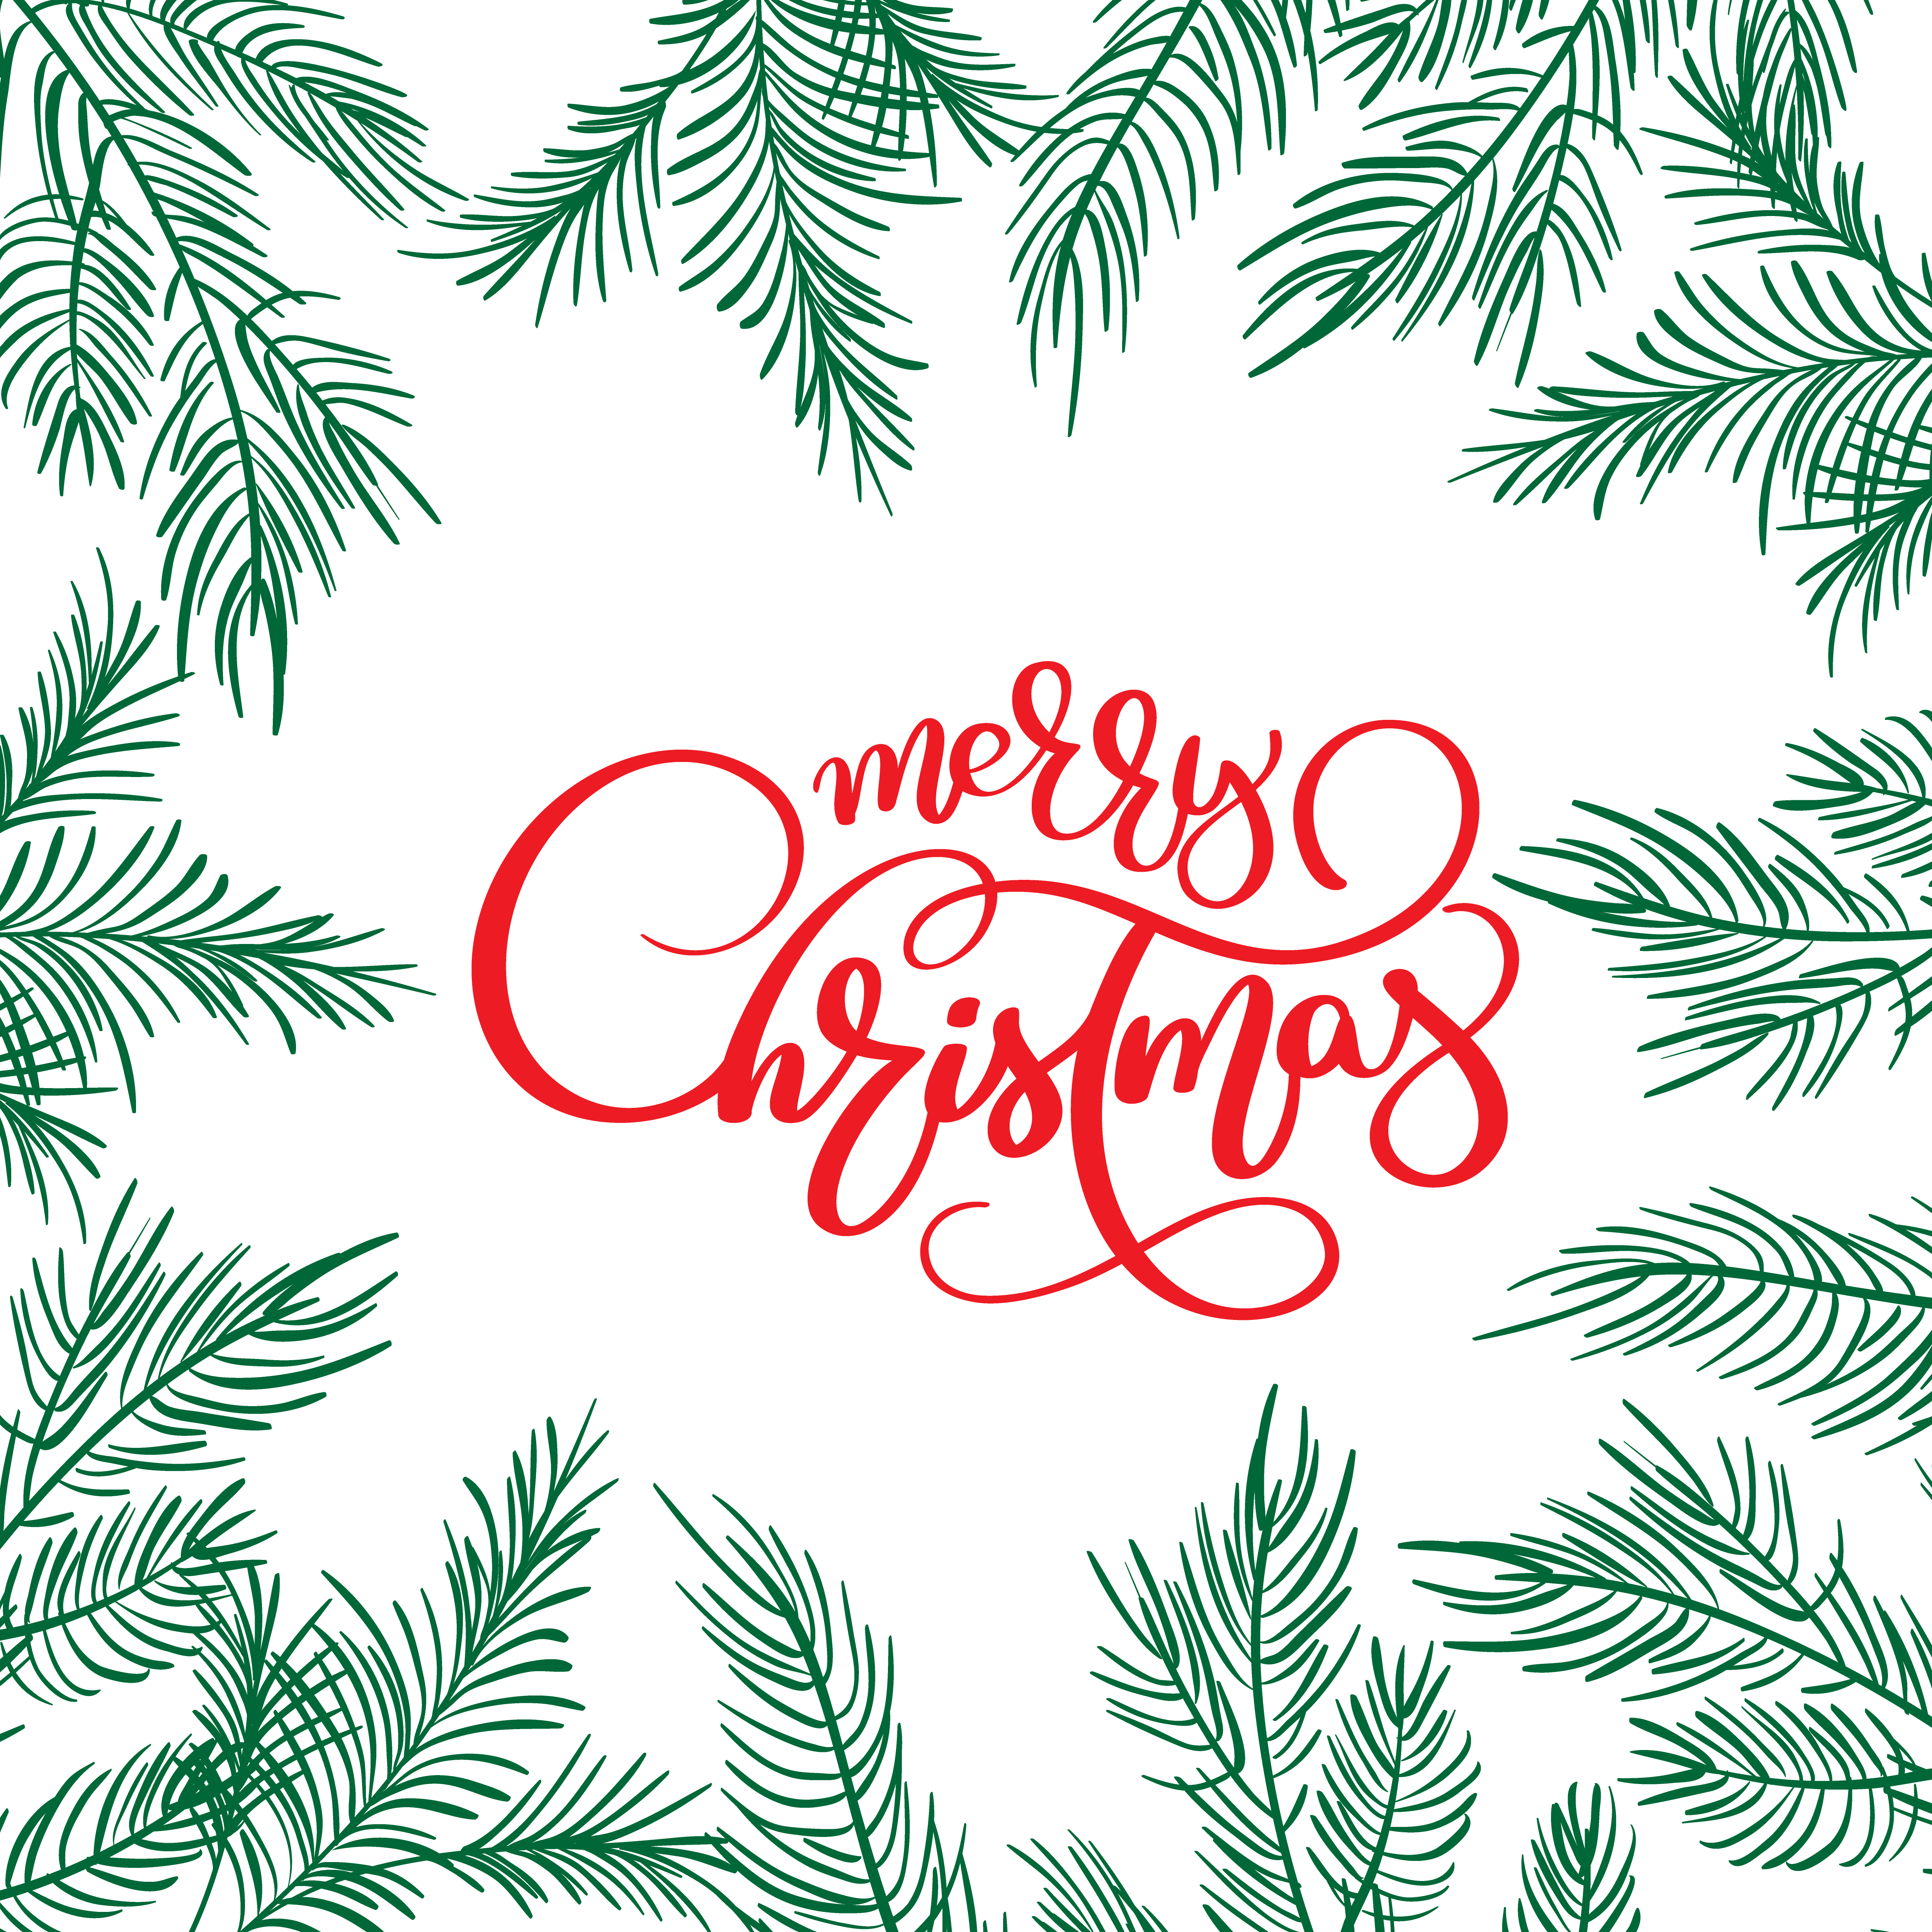 Merry Christmas Illustration: Merry Christmas Calligraphy Lettering Text And And Frame